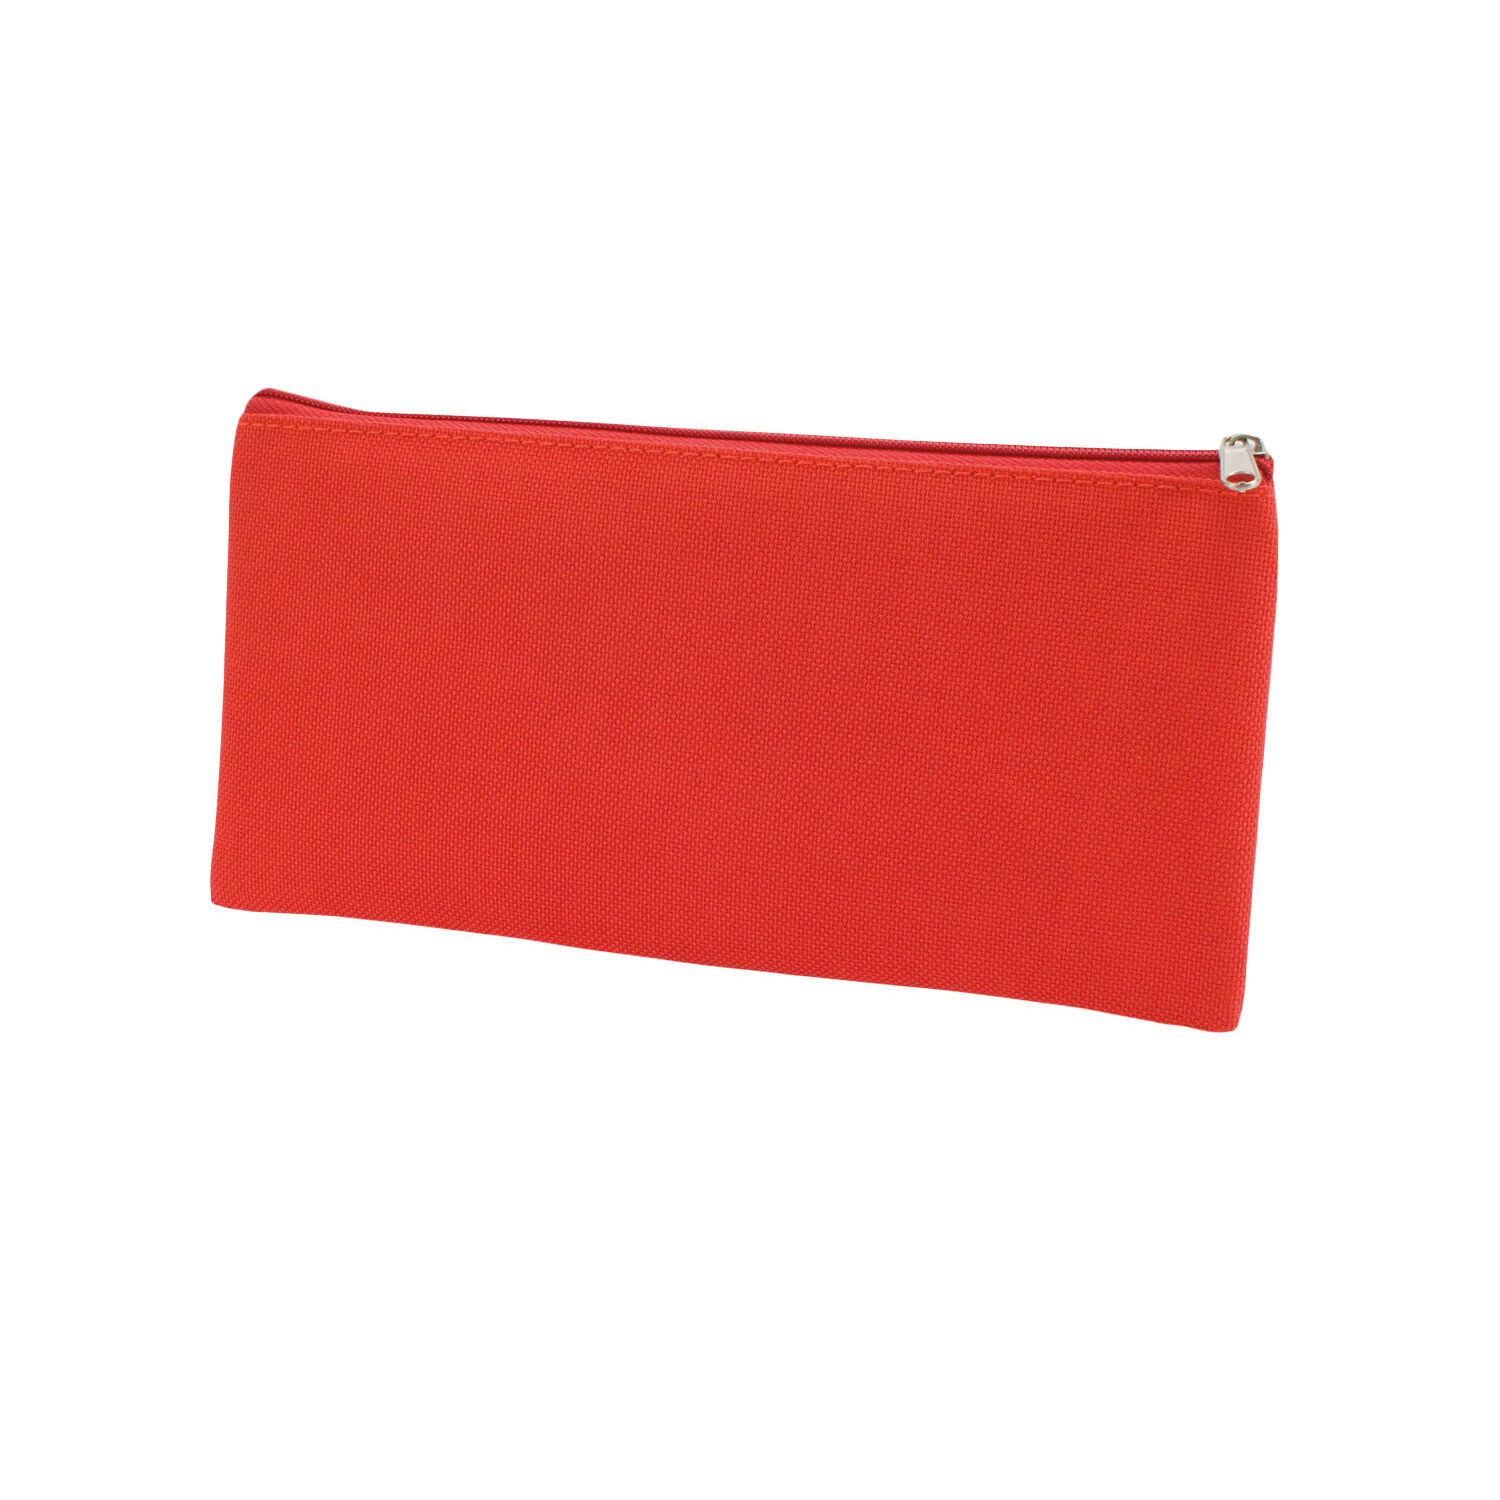 Large Pencil Cases - Red